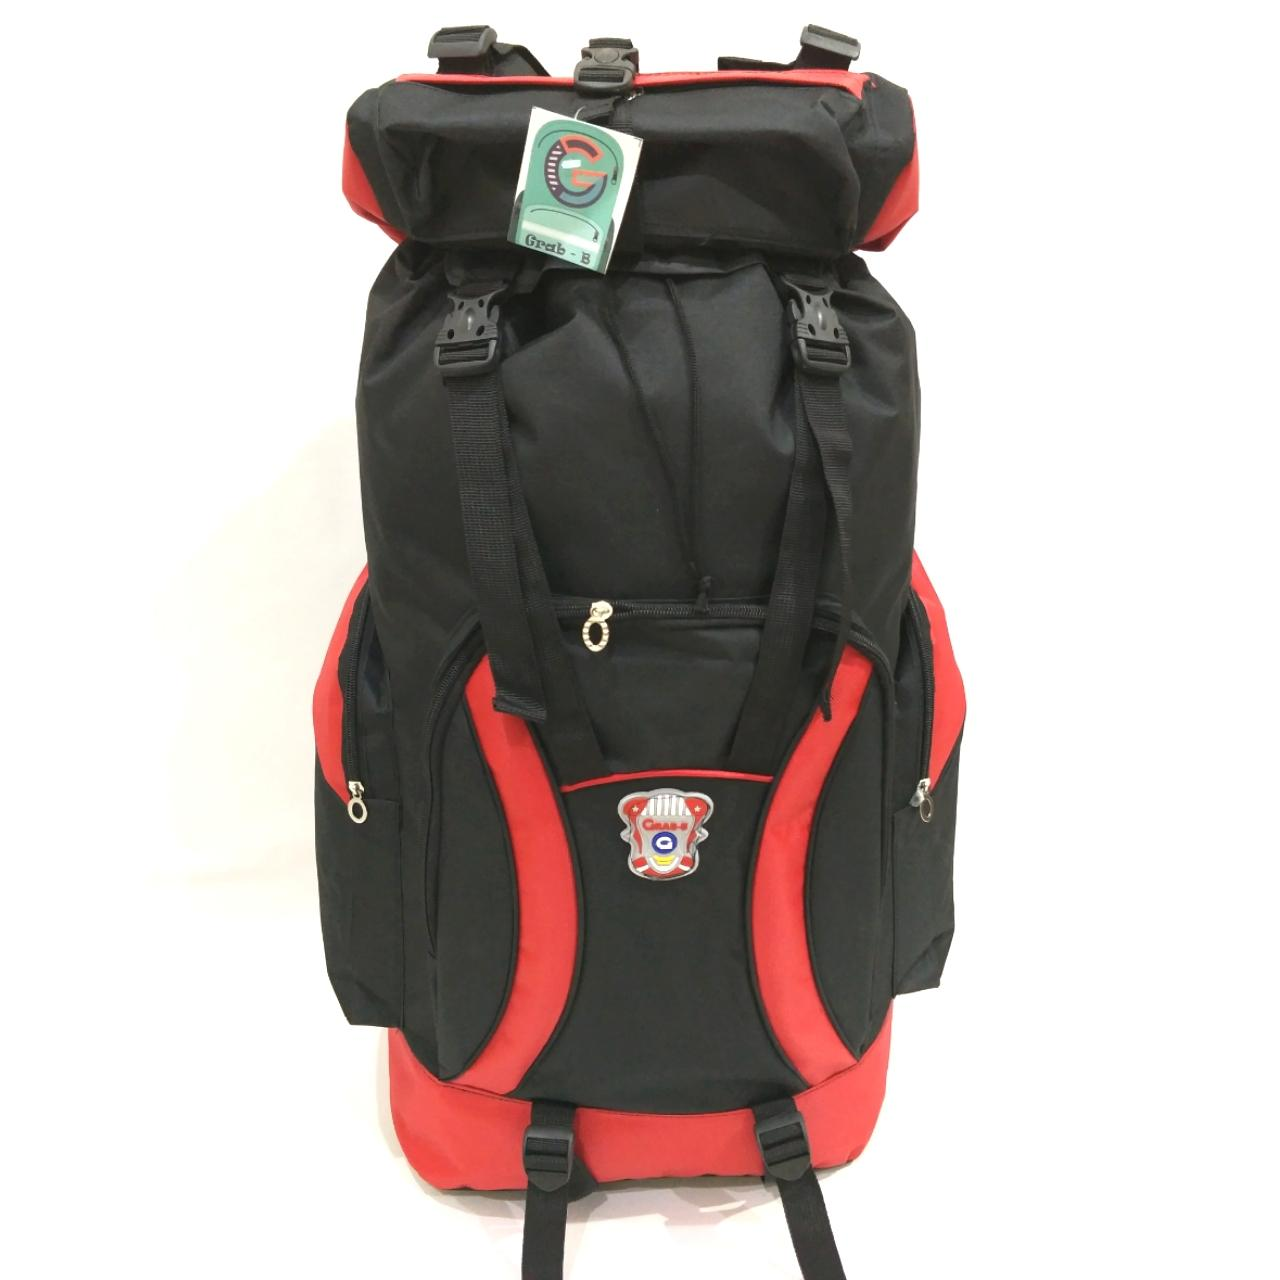 Grab-B Tas Carrier Hiking 0314 Merah